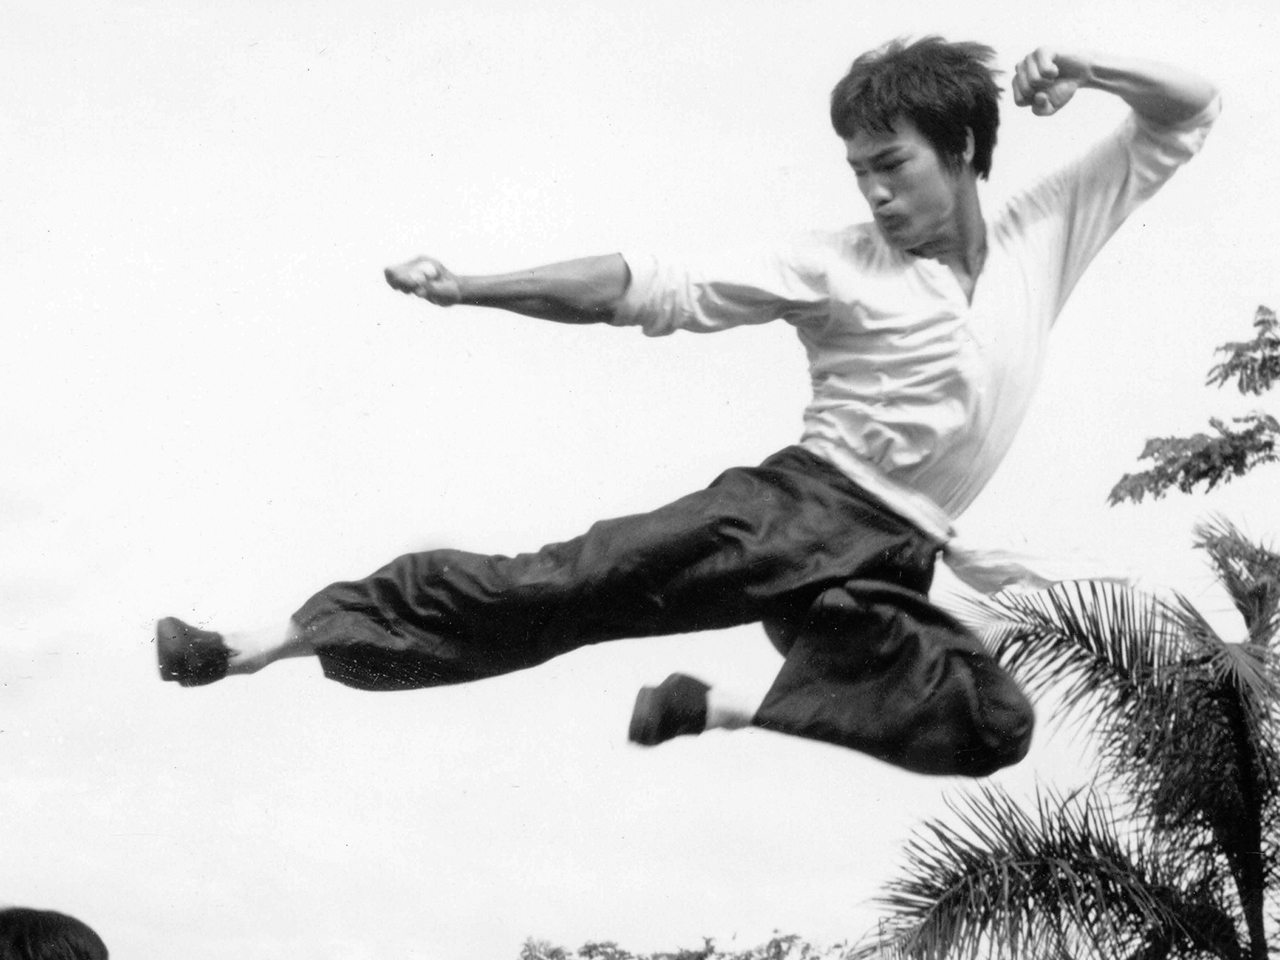 Bruce-Lee-Flying-Kick-Jeet-Kune-Do-patada voladora